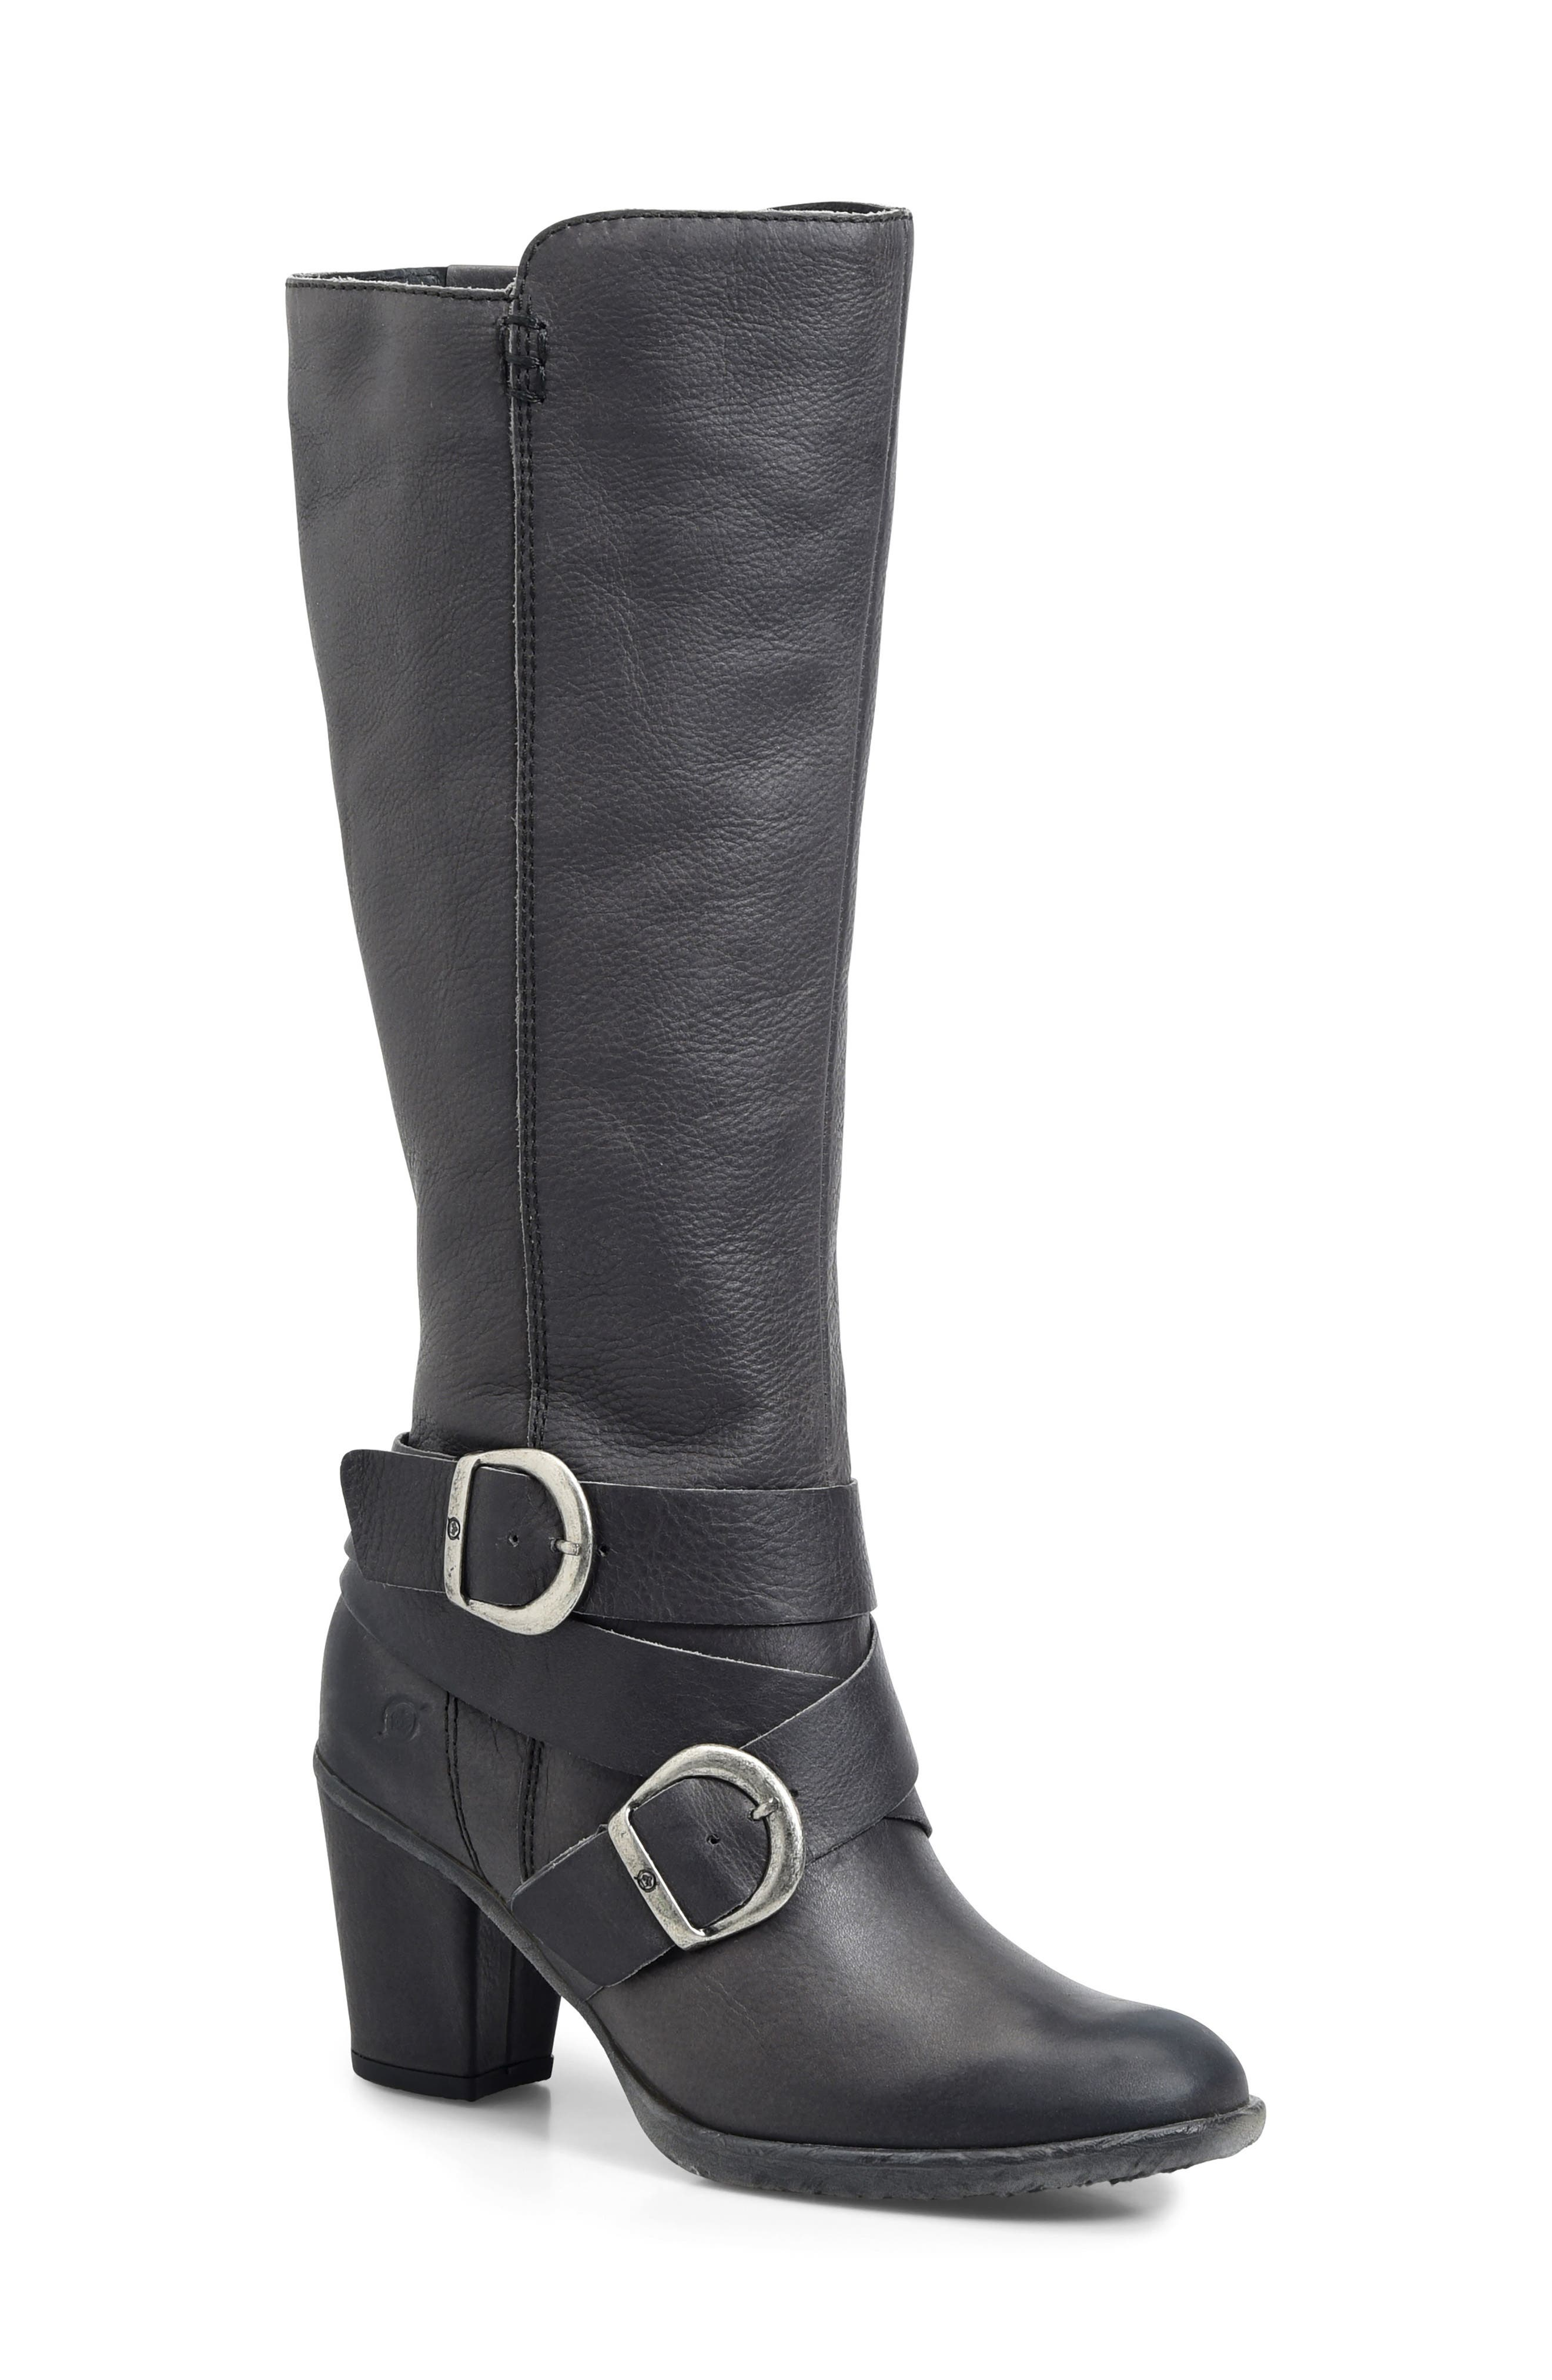 Cresent Knee High Boot,                         Main,                         color, Dark Grey Leather